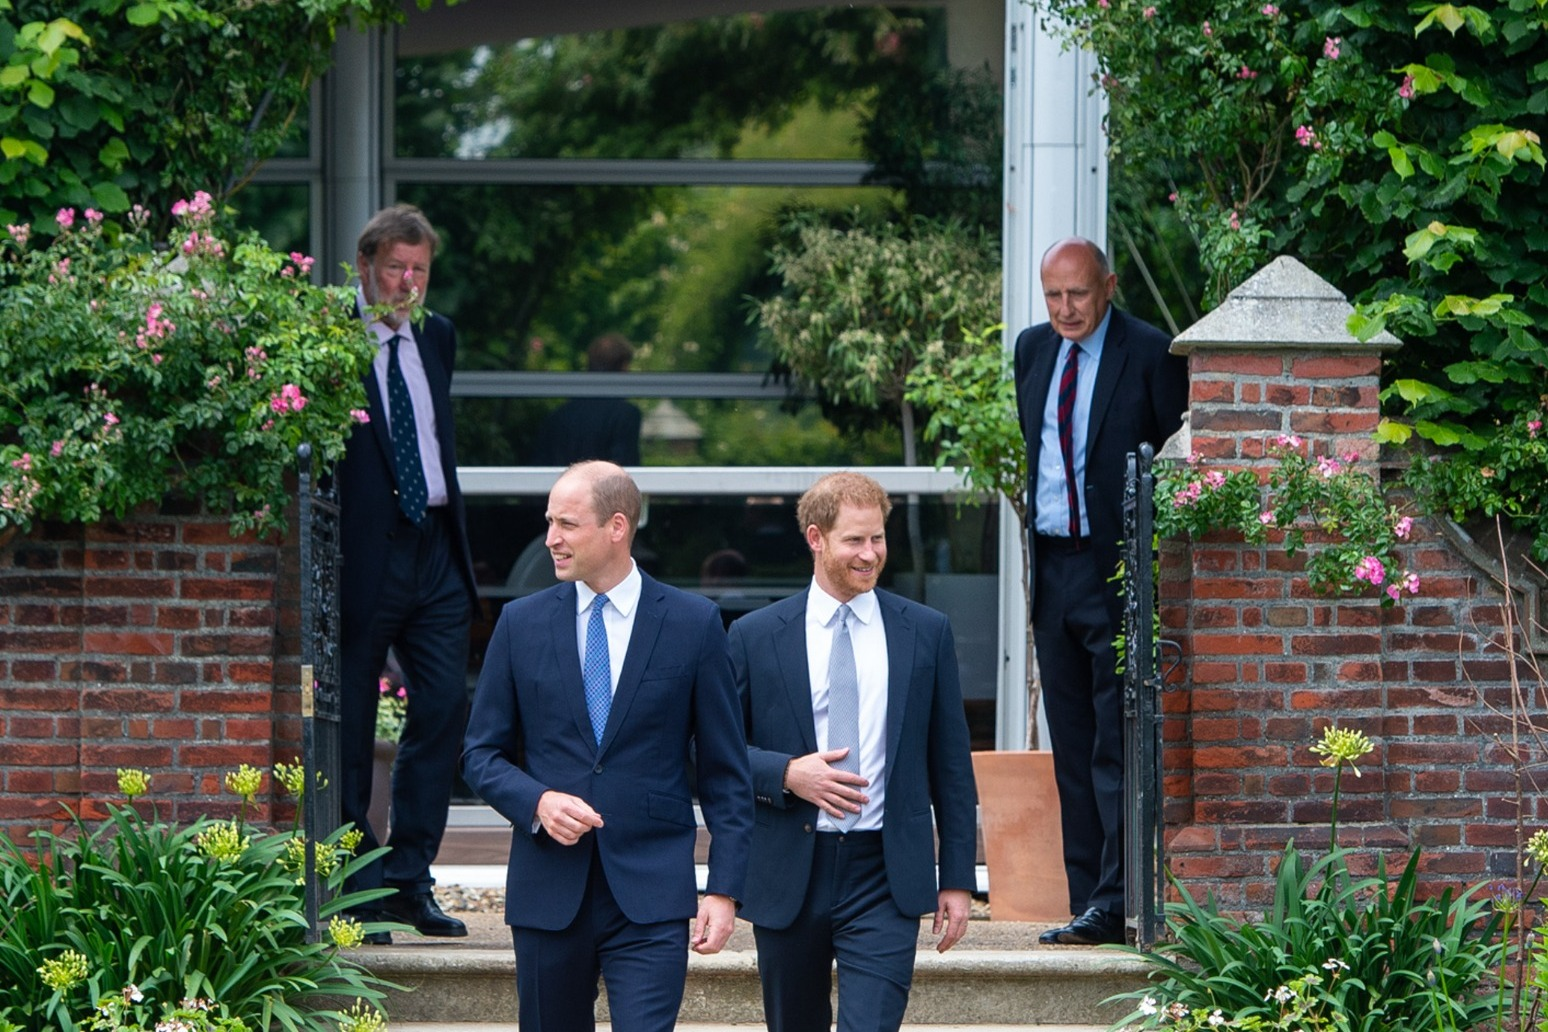 Expert: Mirrored body language shows deep bonds between William and Harry